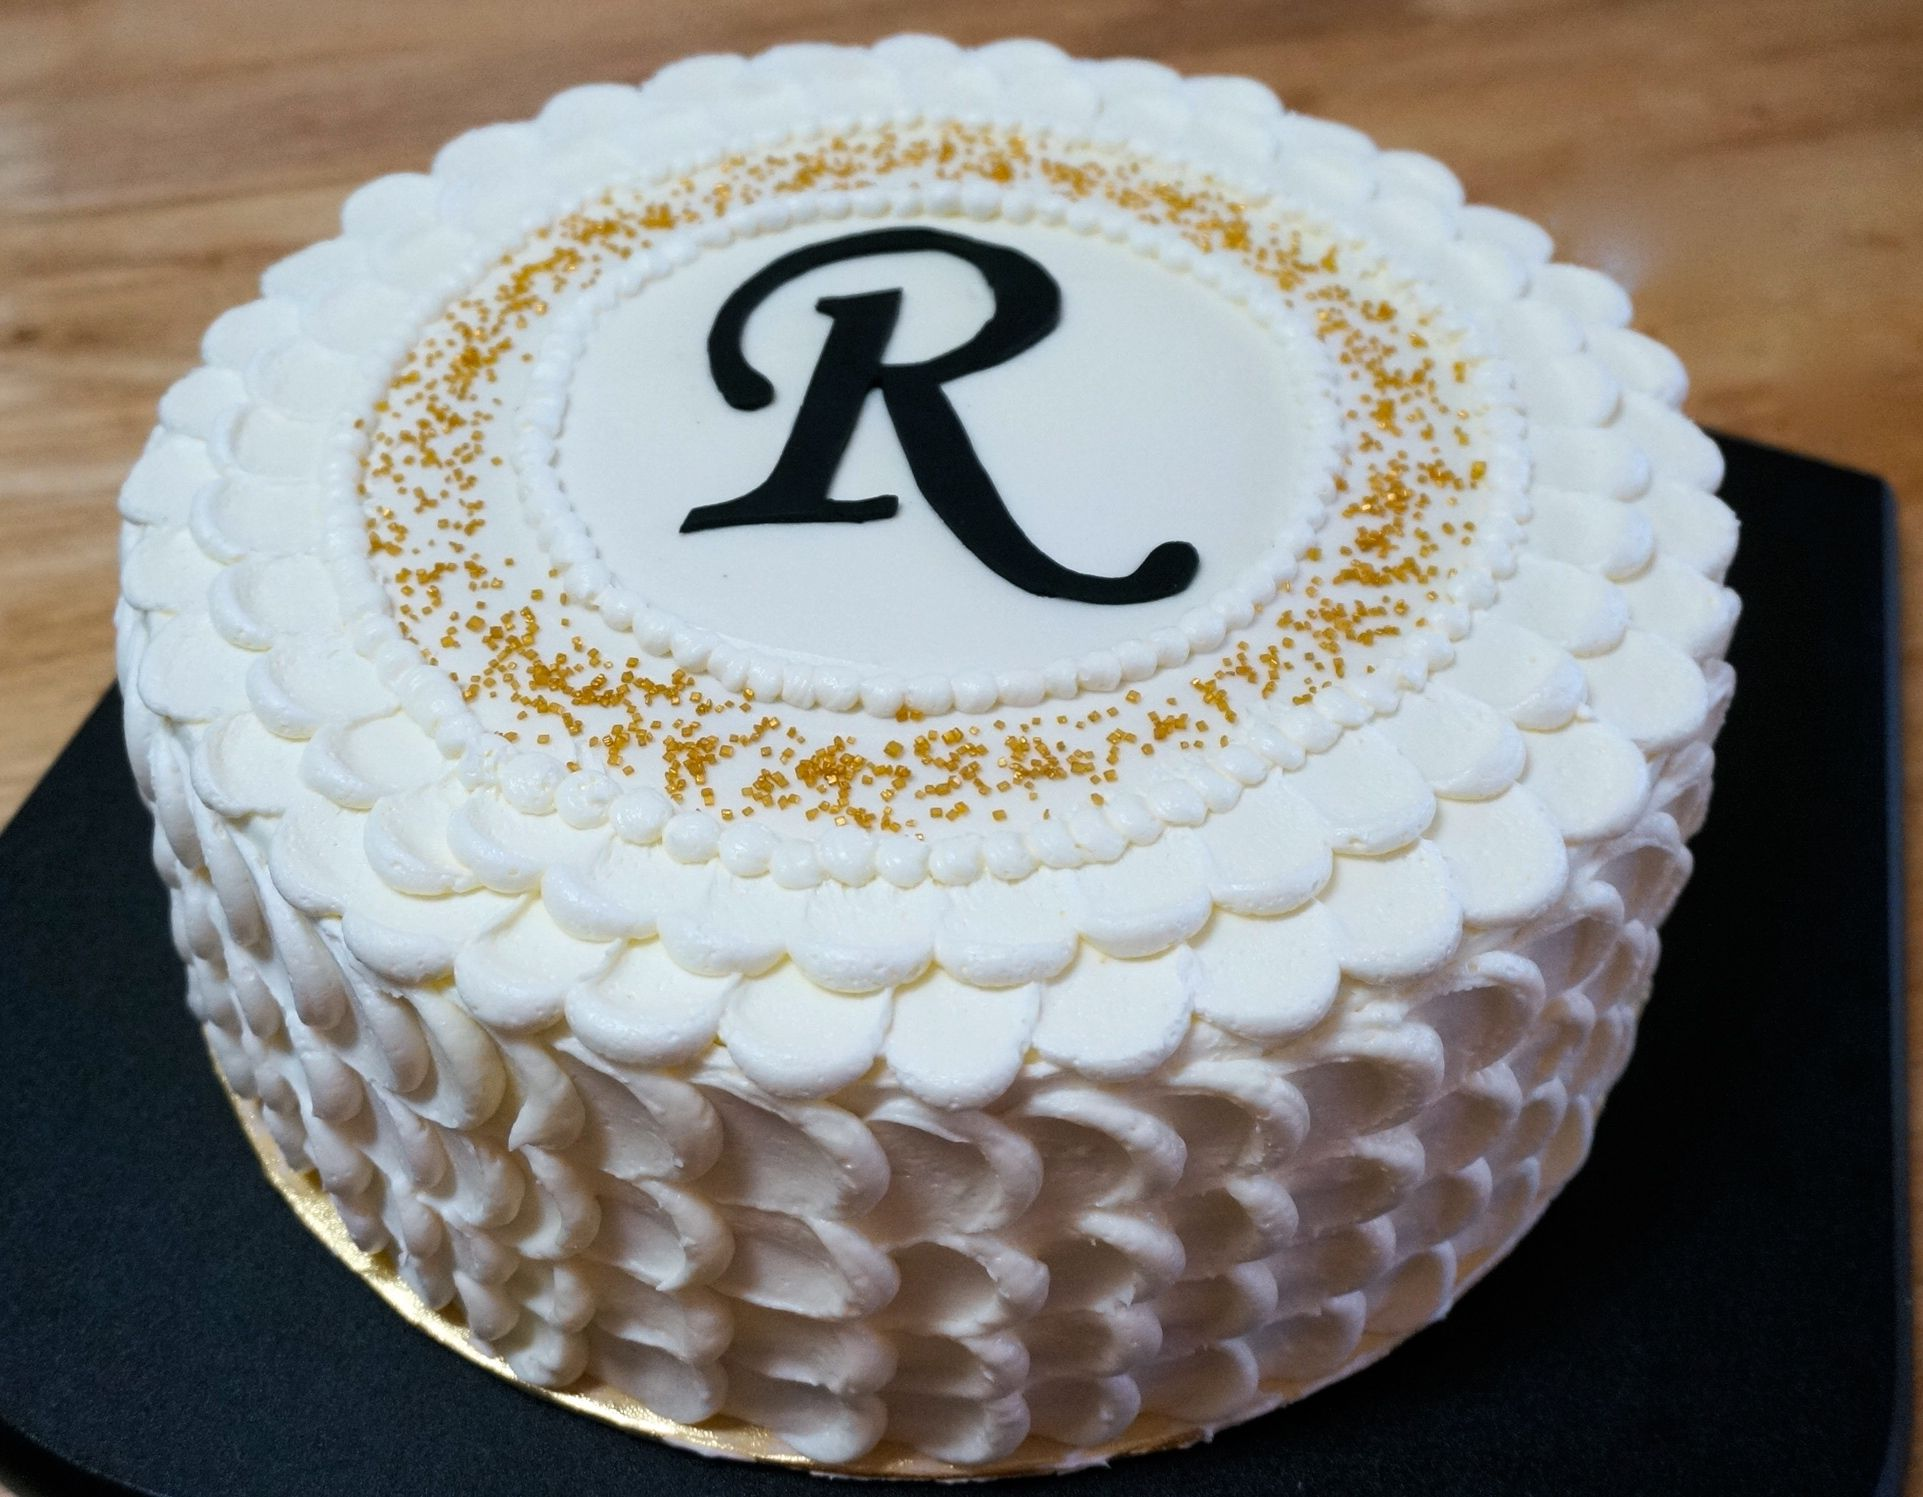 Rustic white amp gold for christian s baptism cake cakes dessert - Cakes By Gigi Tiz Birthday Cake For Randy Gold Black N White